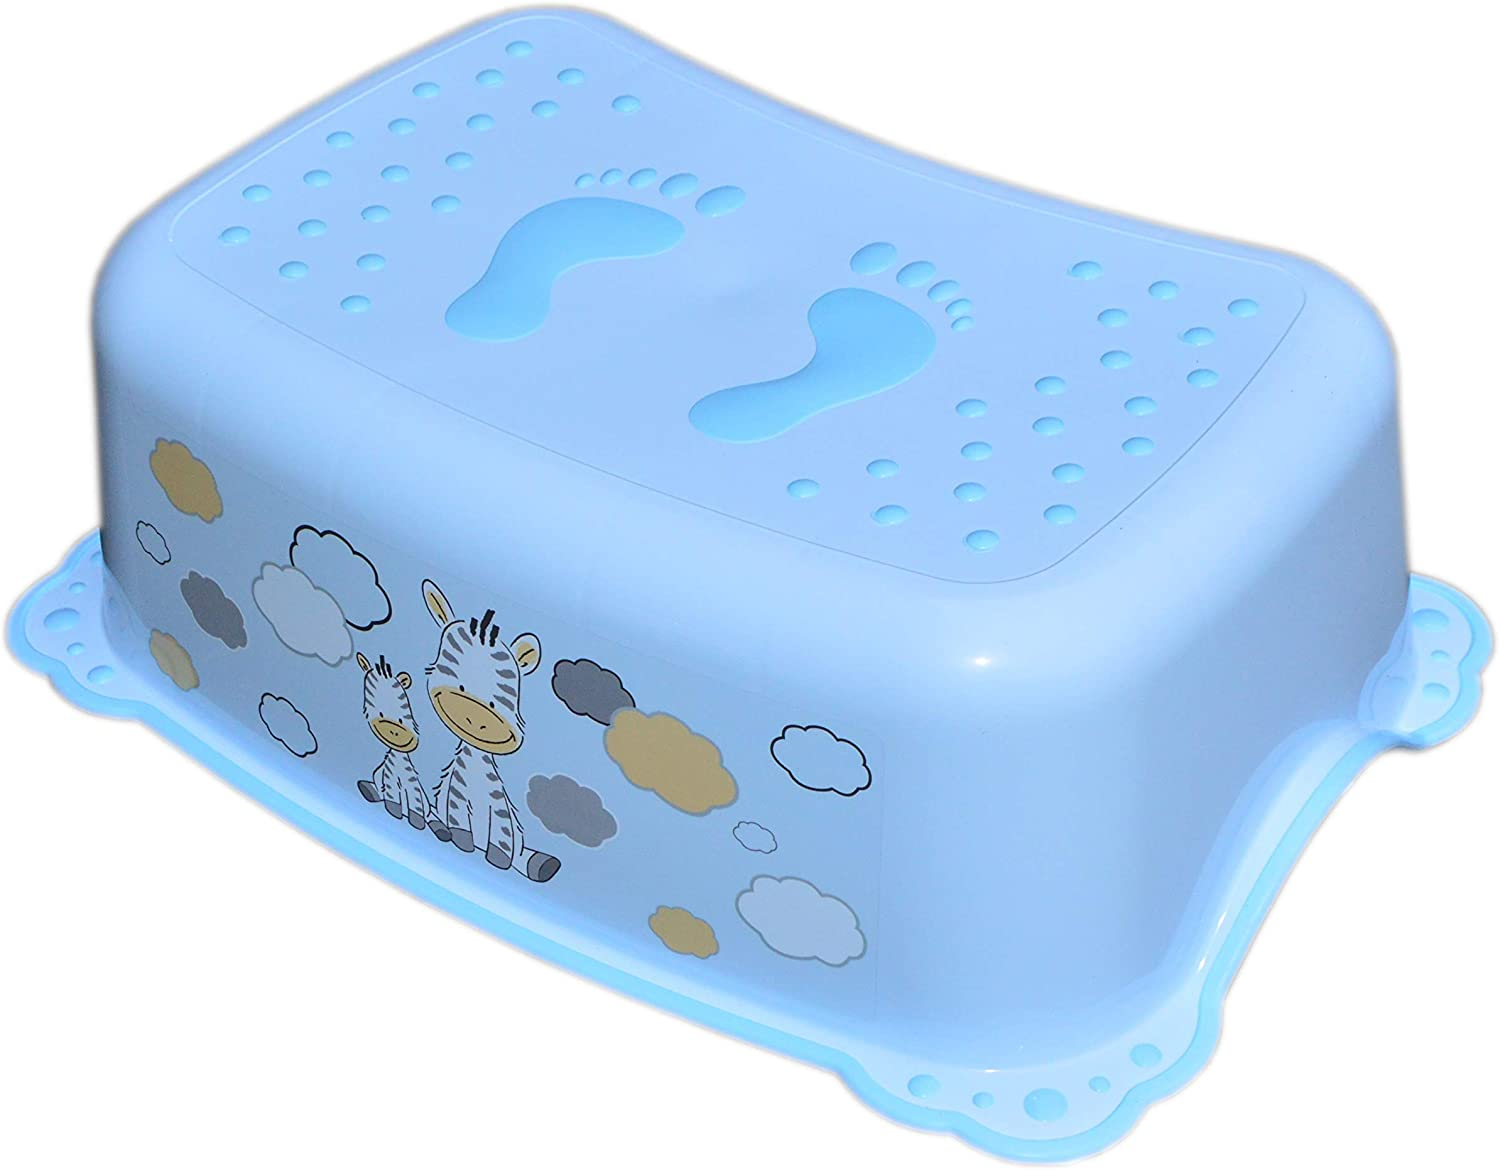 Blue Lightweight Safety Step Height Stool for Baby Kids Toddler for Potty Training Toilet Kitchen Bathroom with Anti-Slip Zebra